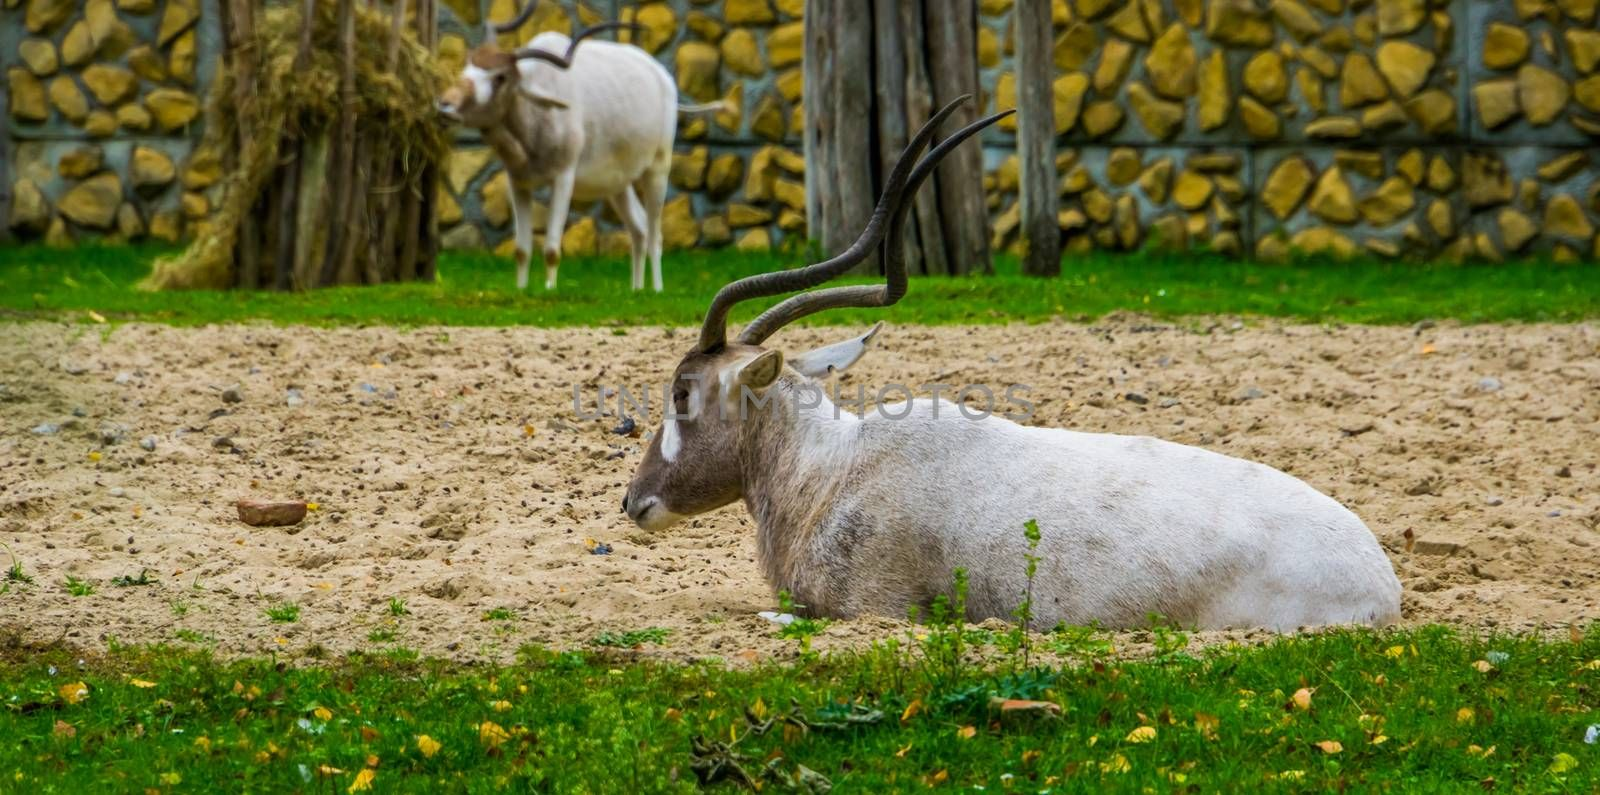 white screwhorn antelope sitting down, critically endangered animal specie from Africa